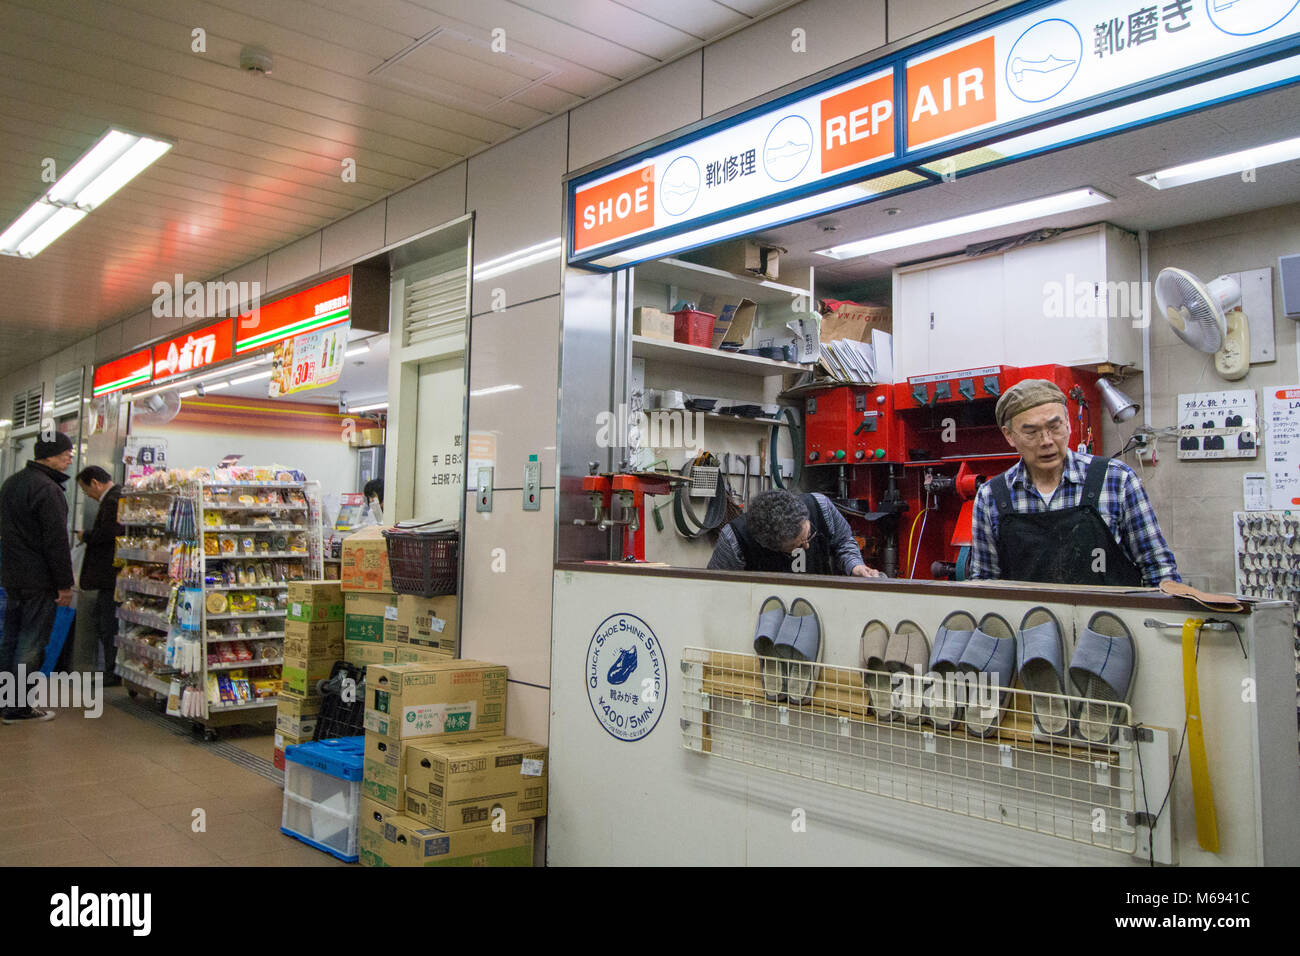 The busy concourse of Osaka train station. A shoe repair stall on the concourse of the station - Stock Image